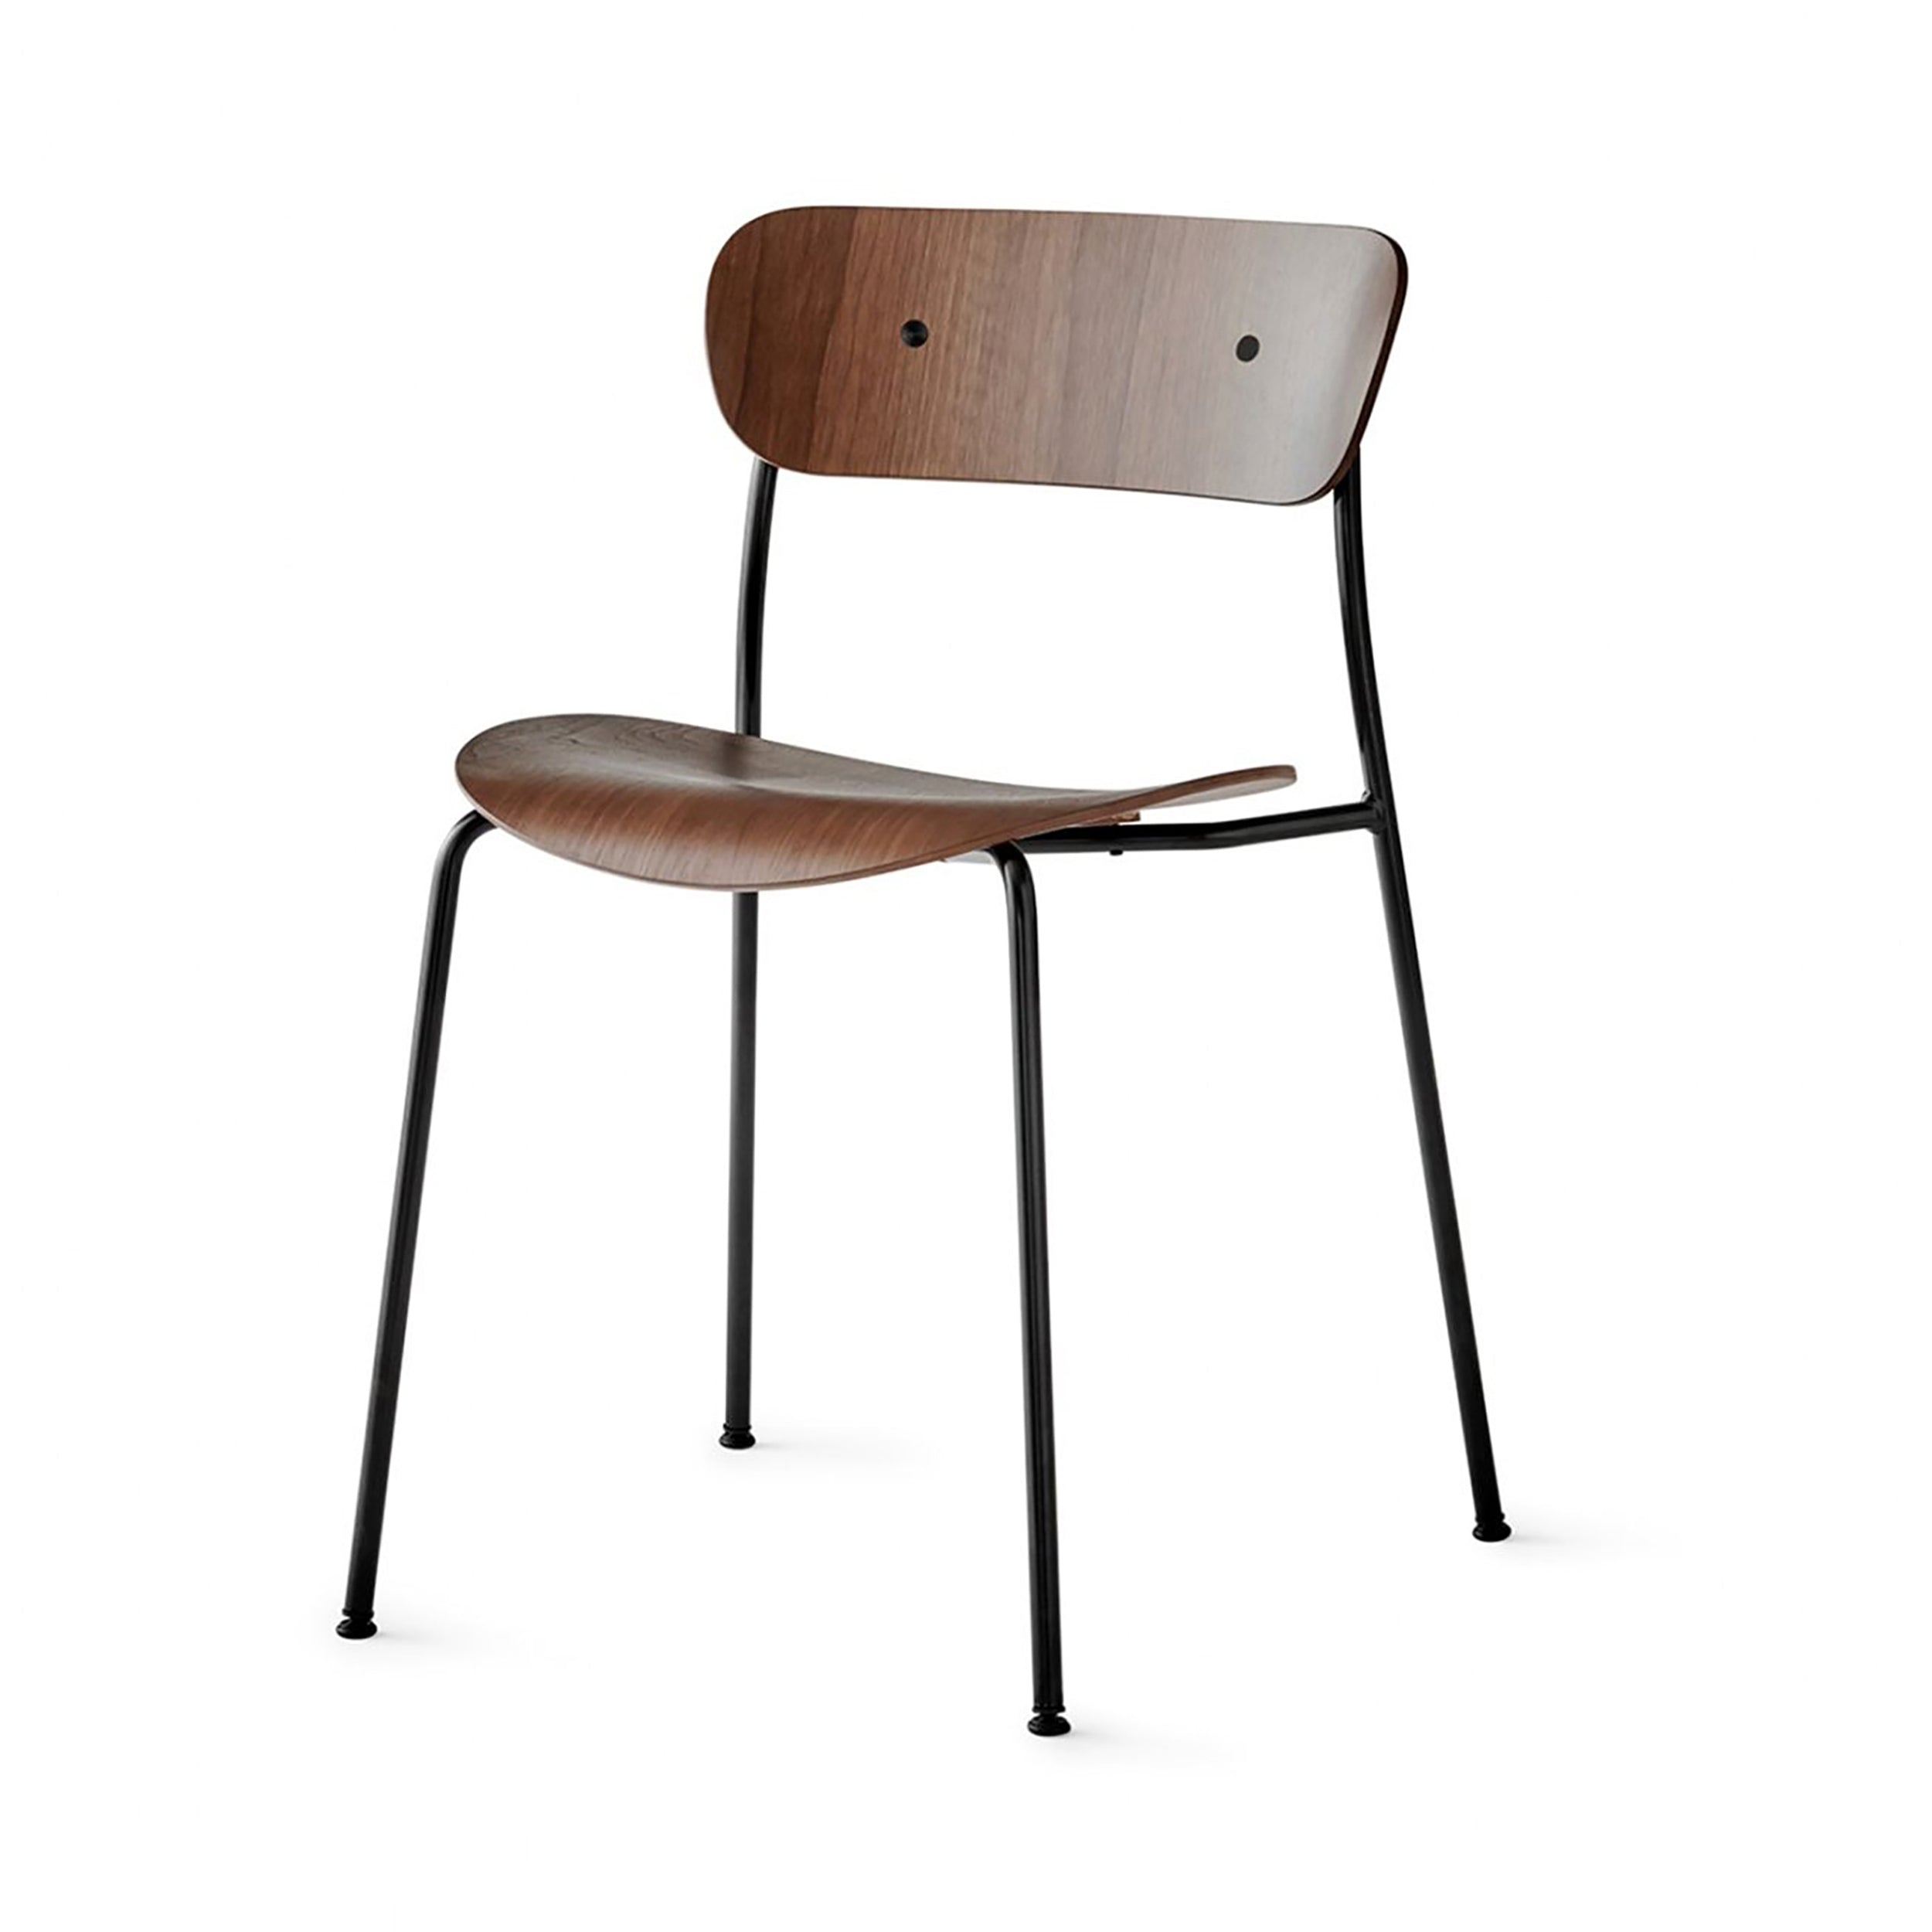 Pavilion Chair AV1: Lacquered Walnut